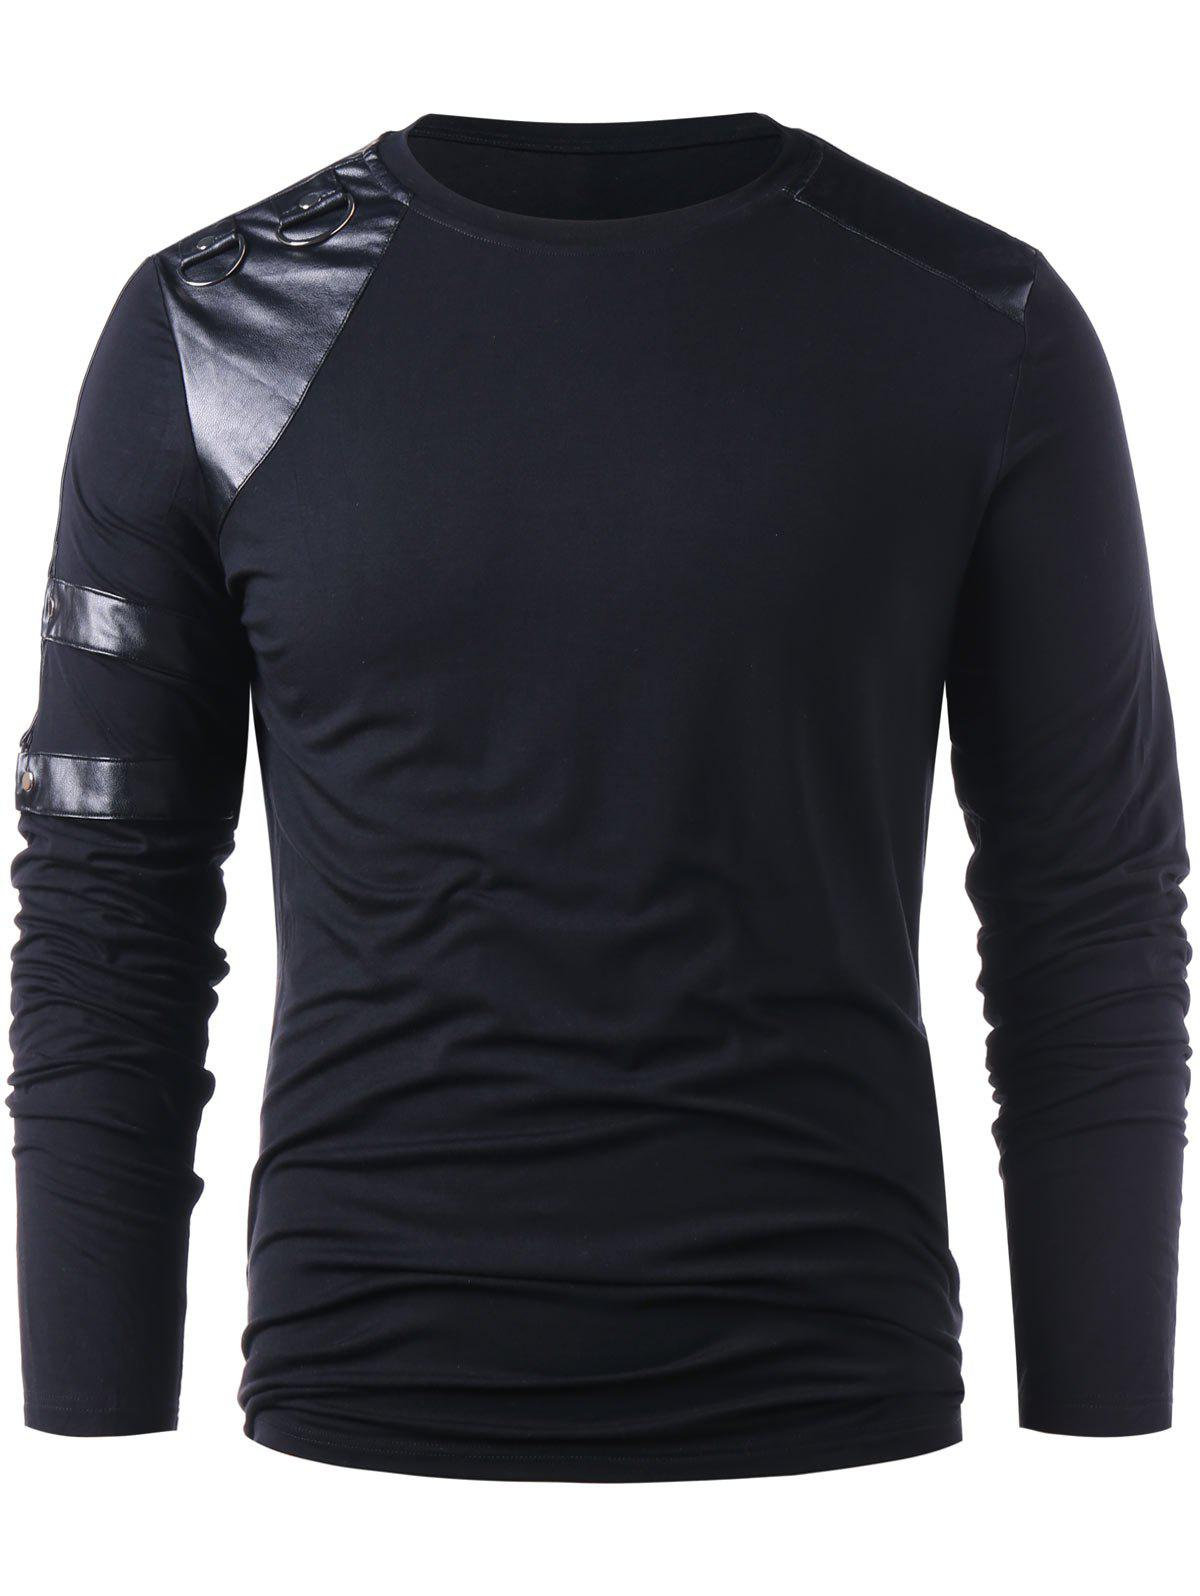 Affordable PU Leather Panel Long Sleeve T-shirt